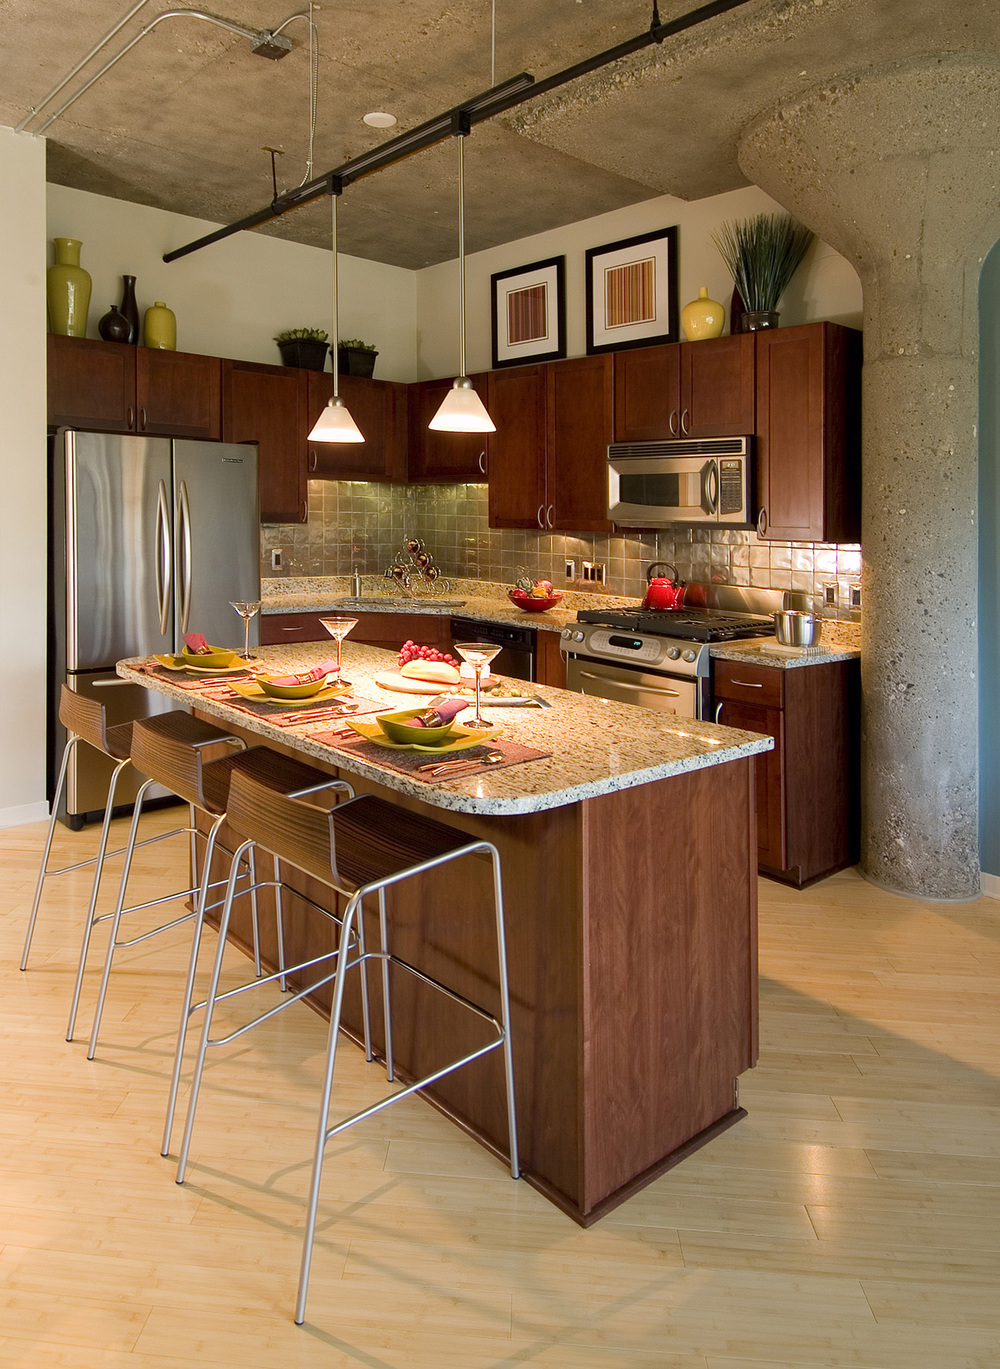 liberty-lofts-kitchen